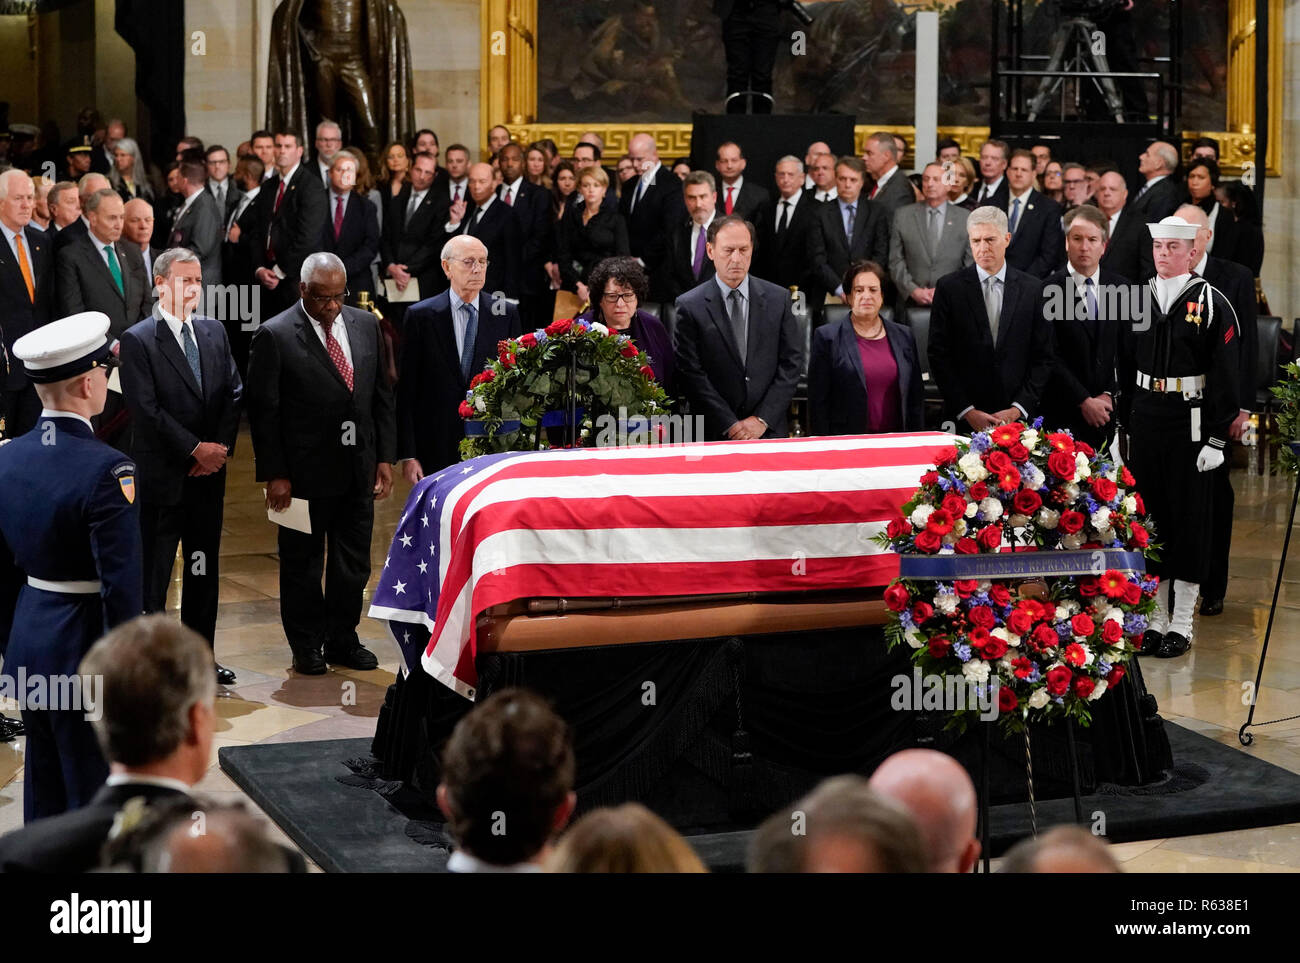 Members of the Supreme Court pause infront of the flag-draped casket of former President George H.W. Bush lying in state at the U.S. Capitol Rotunda in Washington, Monday, 3, 2018. From l-r., are Chief Justice John Roberts, Associate Justice Clarence Thomas, Associate Justice Stephen Breyer, Associate Justice Sonia Sotomayor, Associate Justice Samuel Alito, Associate Justice Elena Kagan, Associate Justice Neil Gorsuch, and Associate Justice Brett Kavanaugh. (AP Photo/Pablo Martinez Monsivais/Pool) | usage worldwide - Stock Image